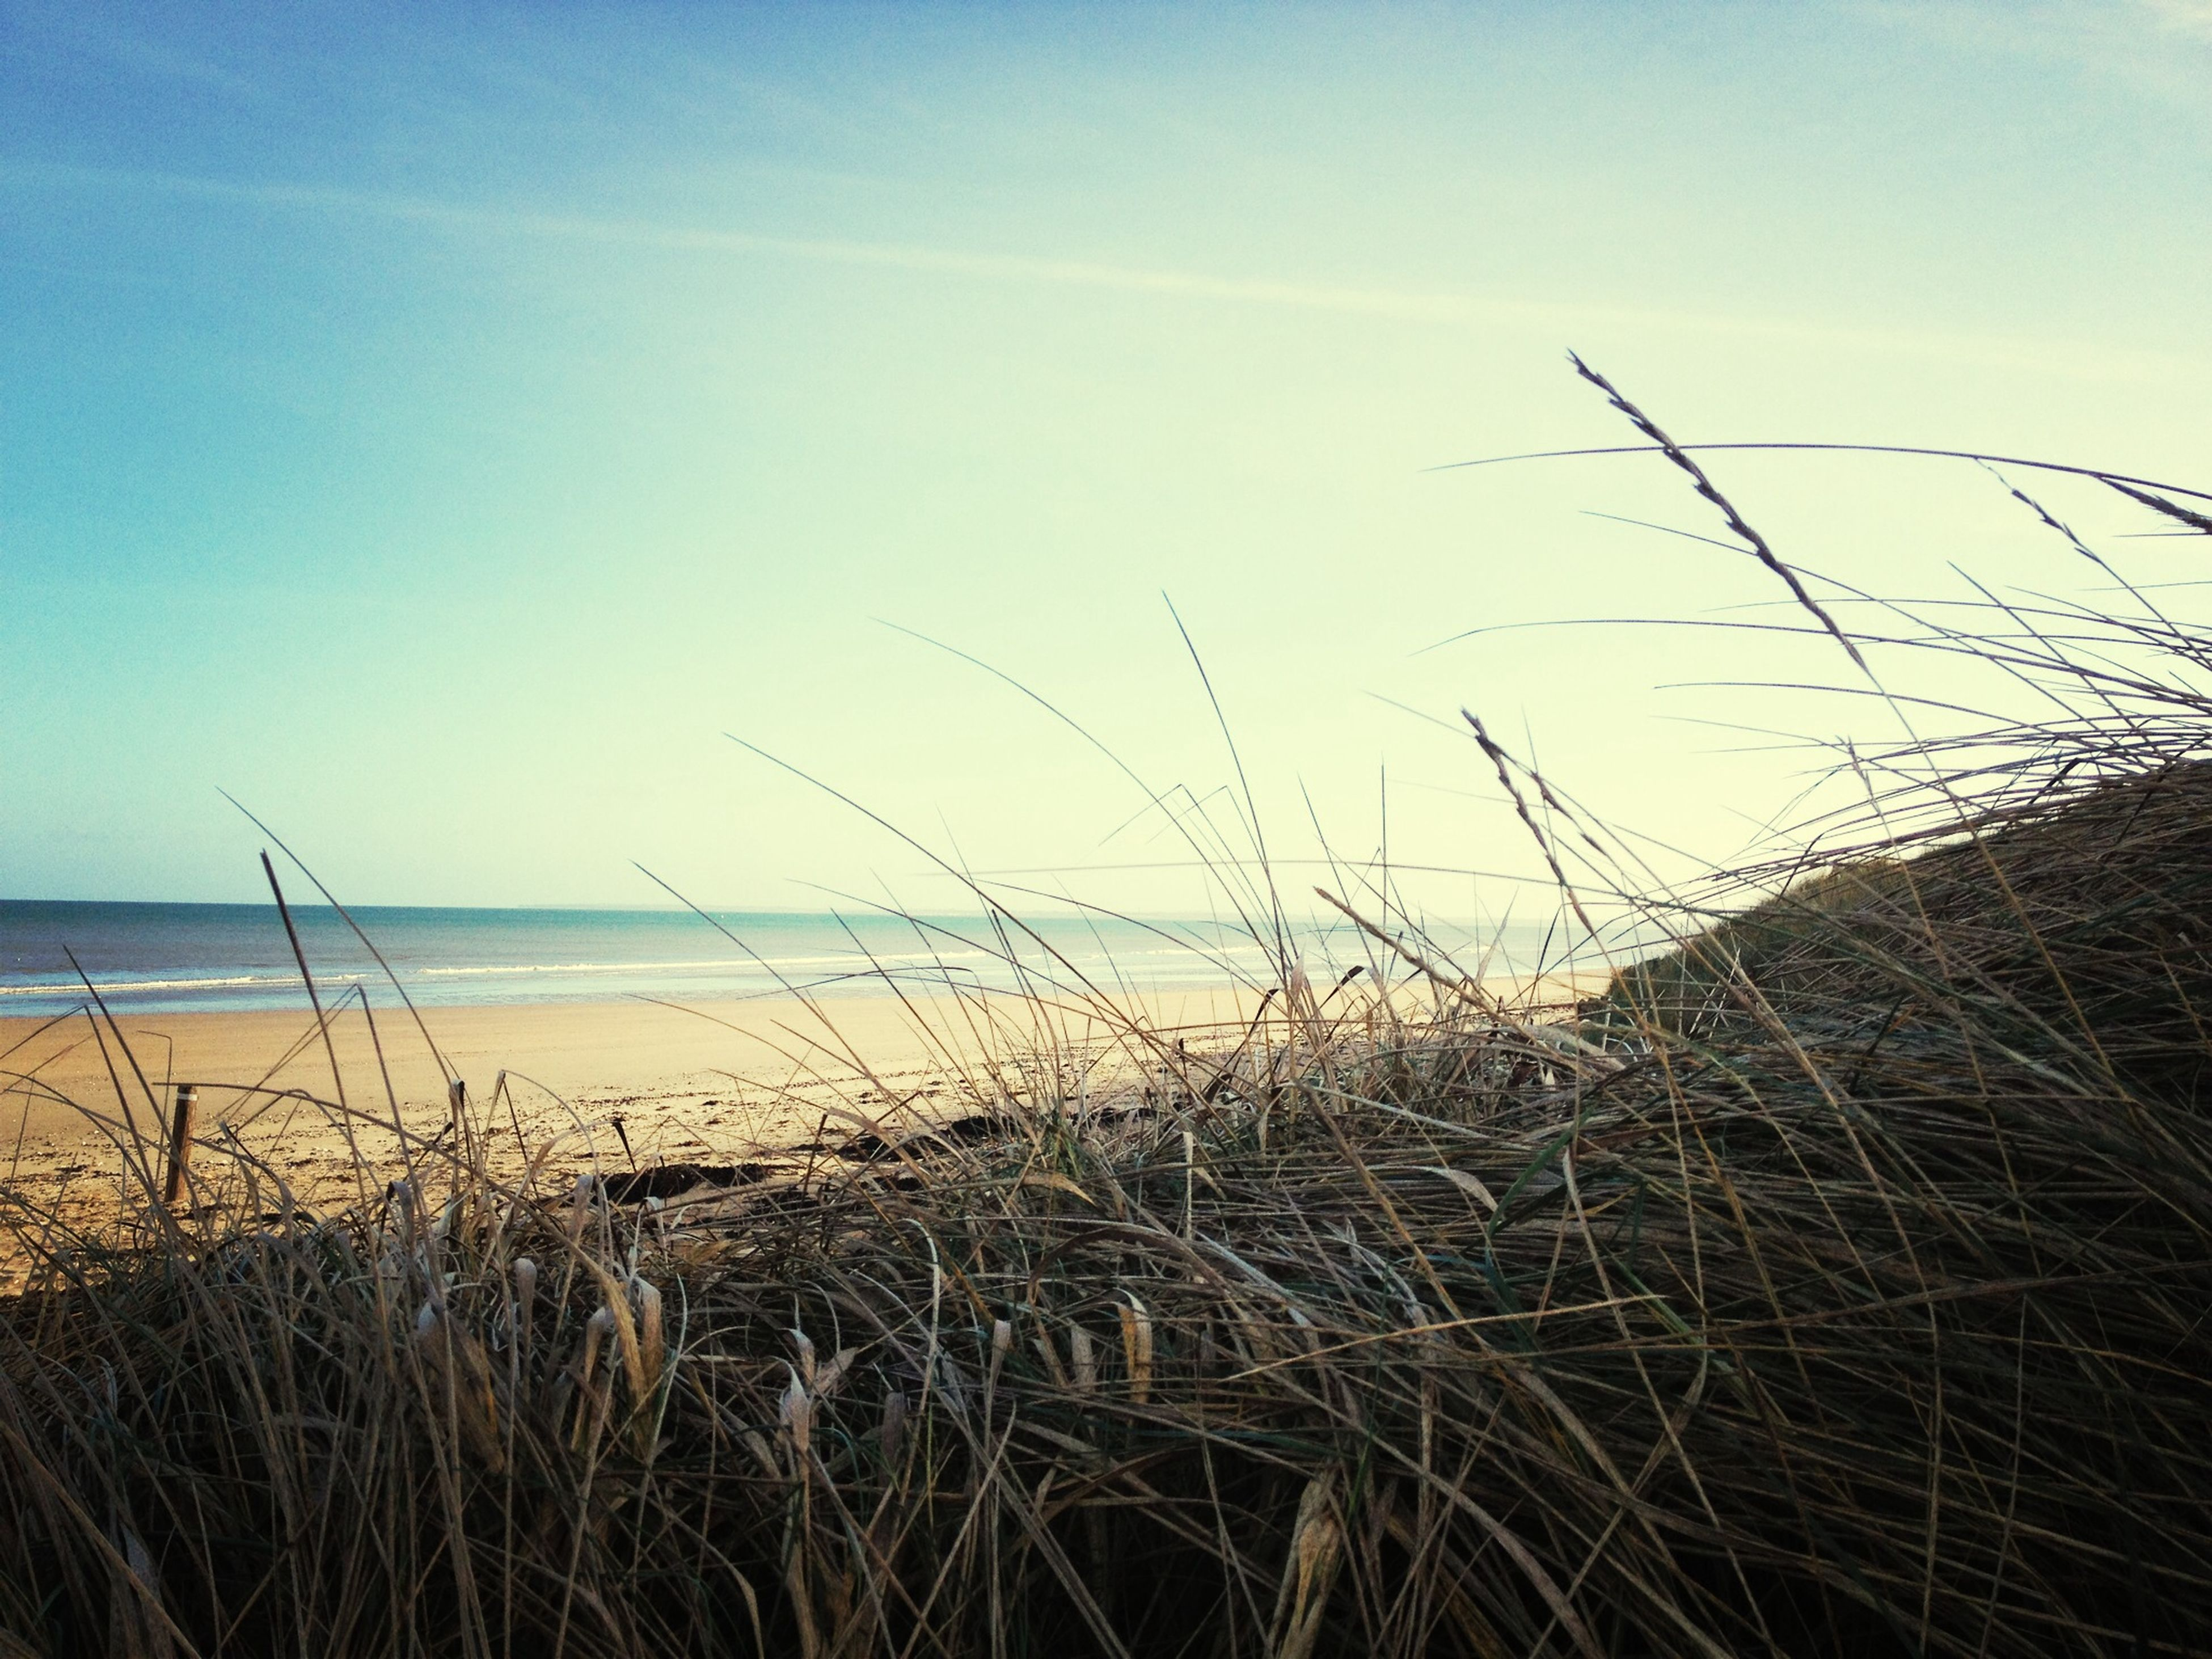 horizon over water, sea, beach, water, tranquility, tranquil scene, sky, scenics, shore, plant, nature, beauty in nature, grass, sand, growth, idyllic, outdoors, remote, growing, day